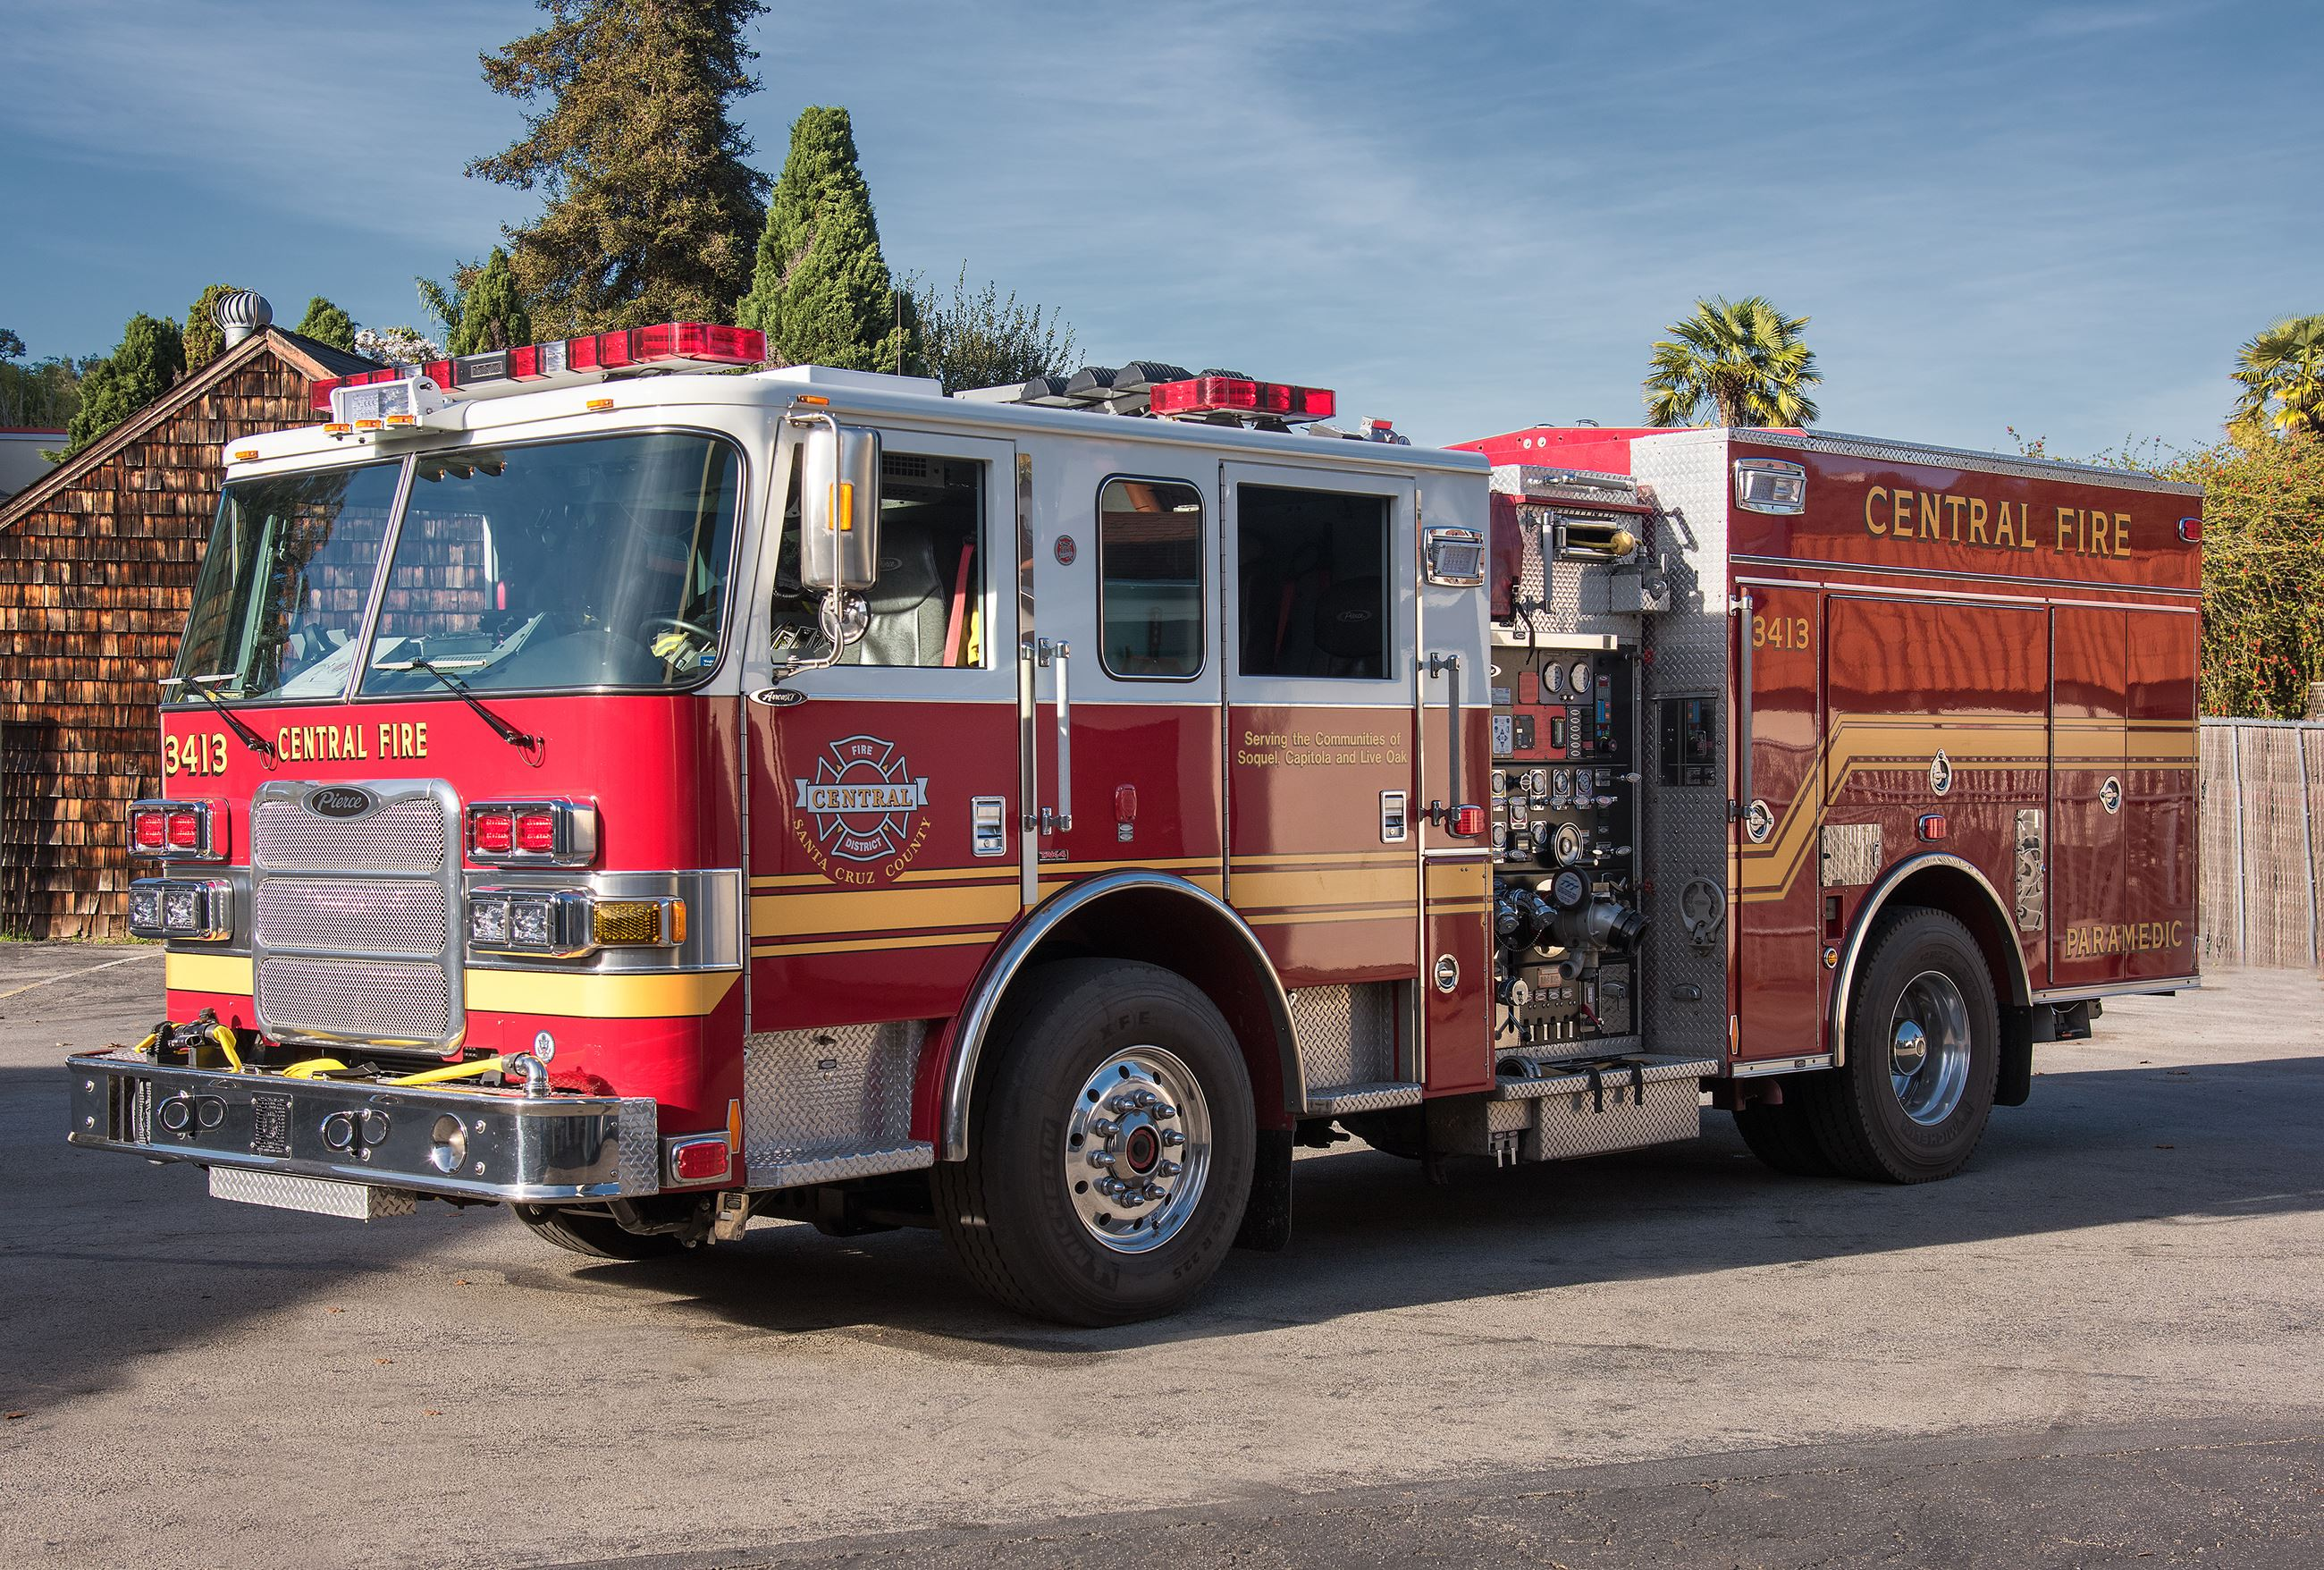 Station 1 - Aptos